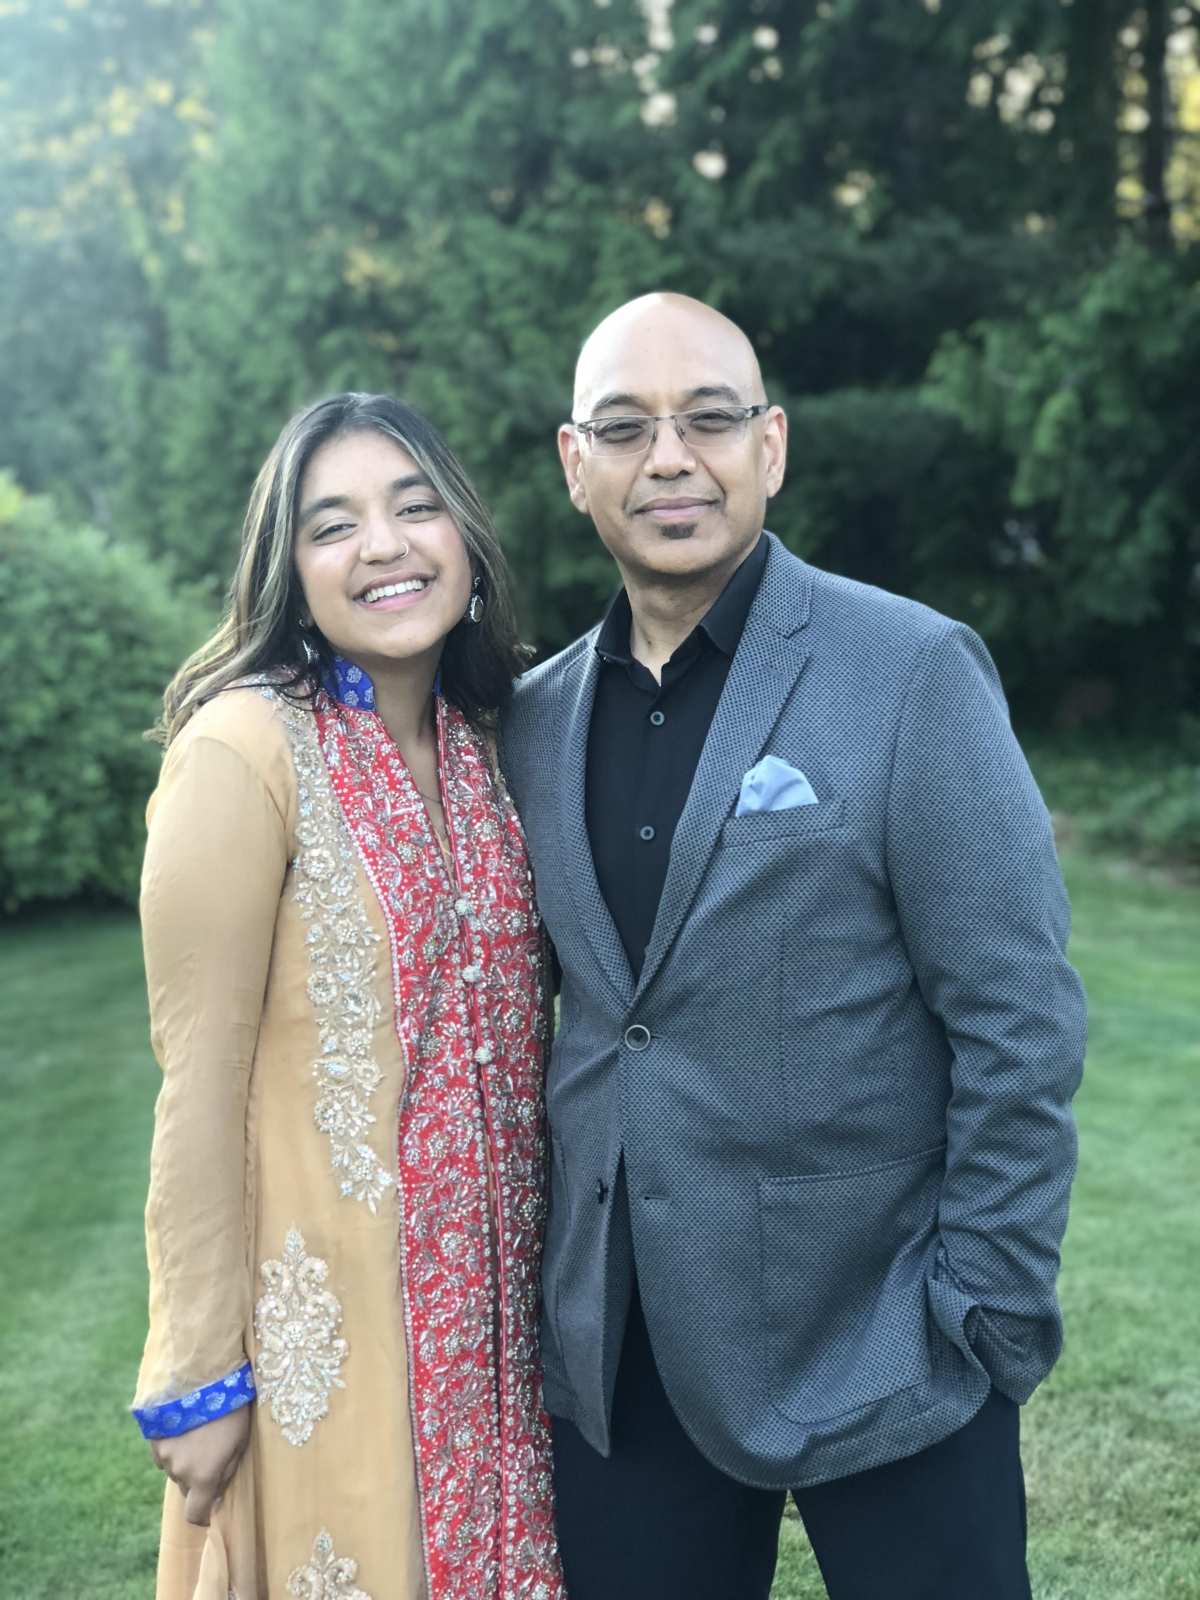 Aleena at a wedding with her father